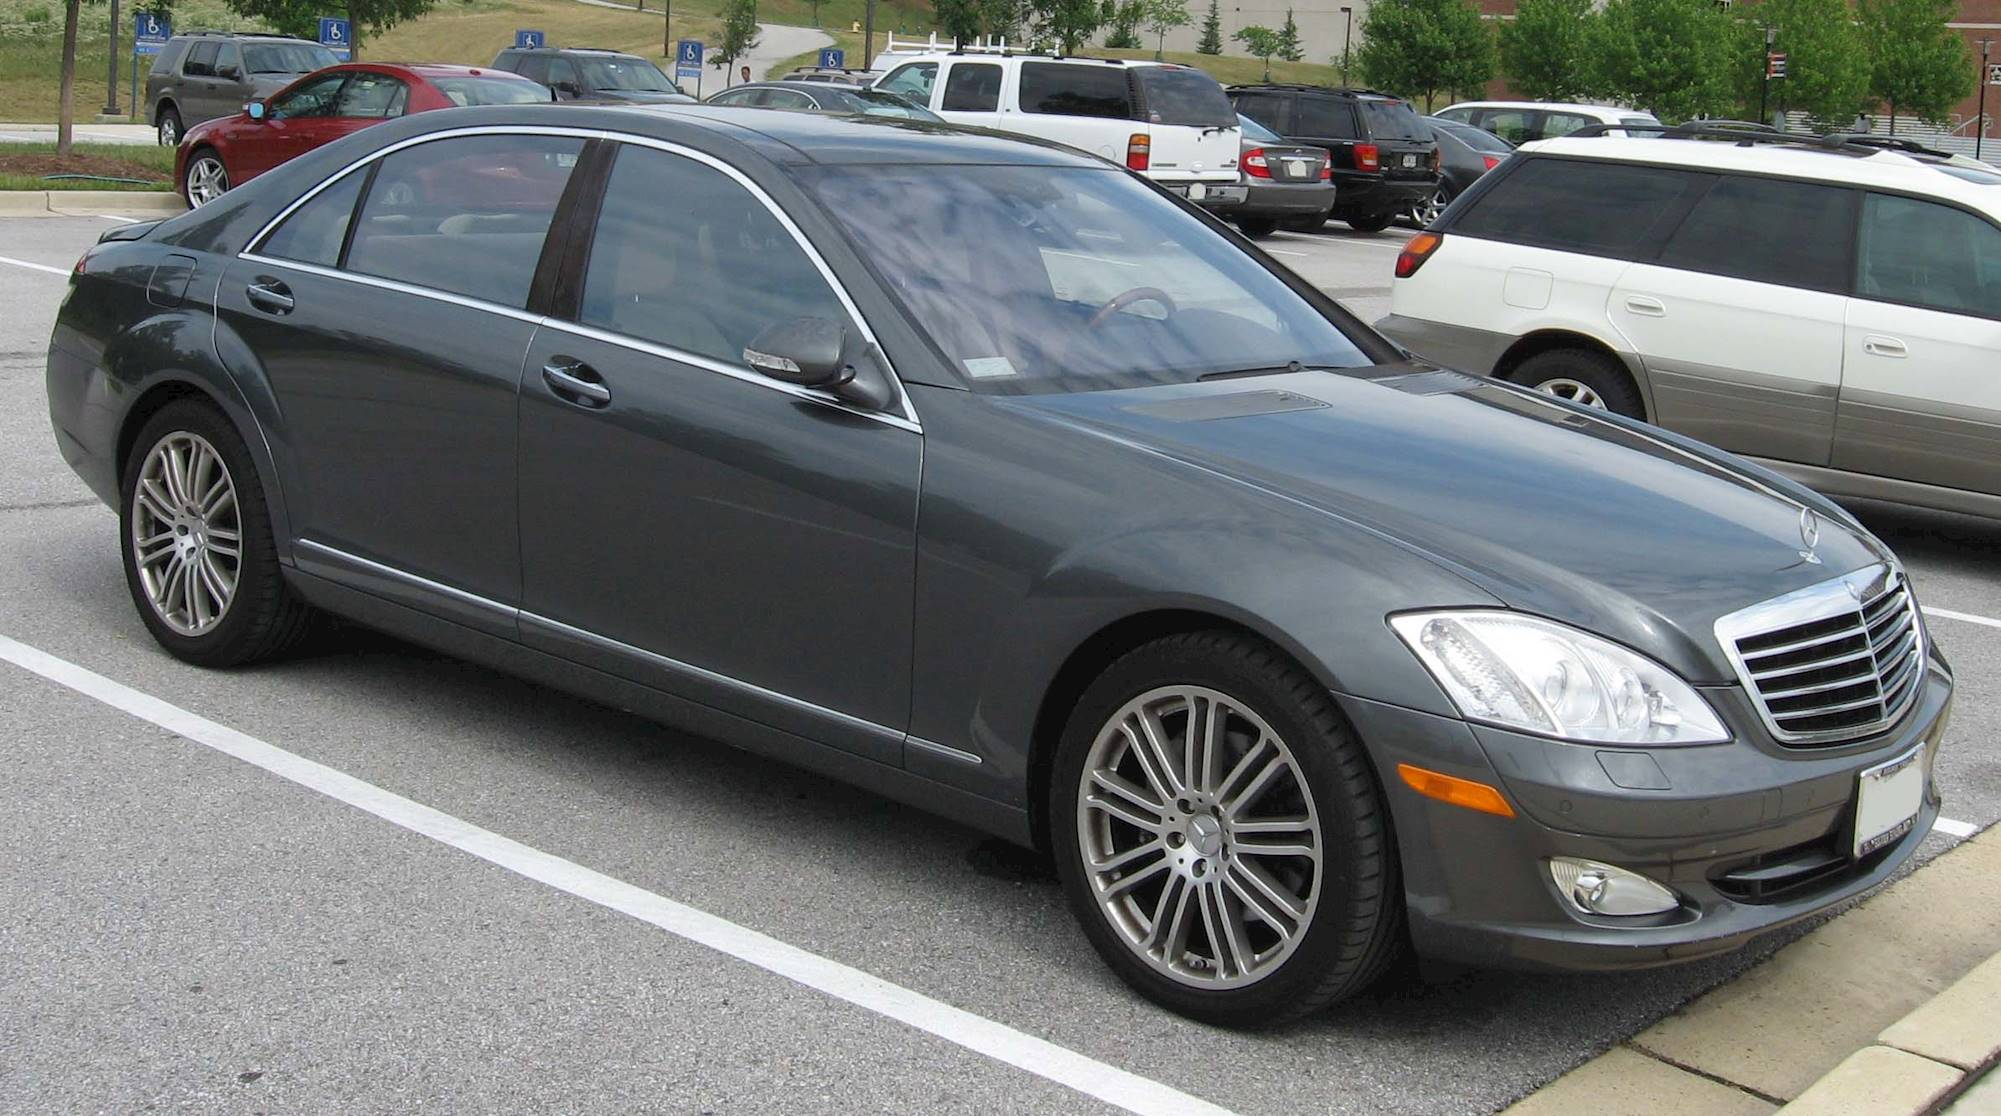 2007 Mercedes Benz S550 Base 4dr All wheel Drive 4MATIC Sedan 7 spd